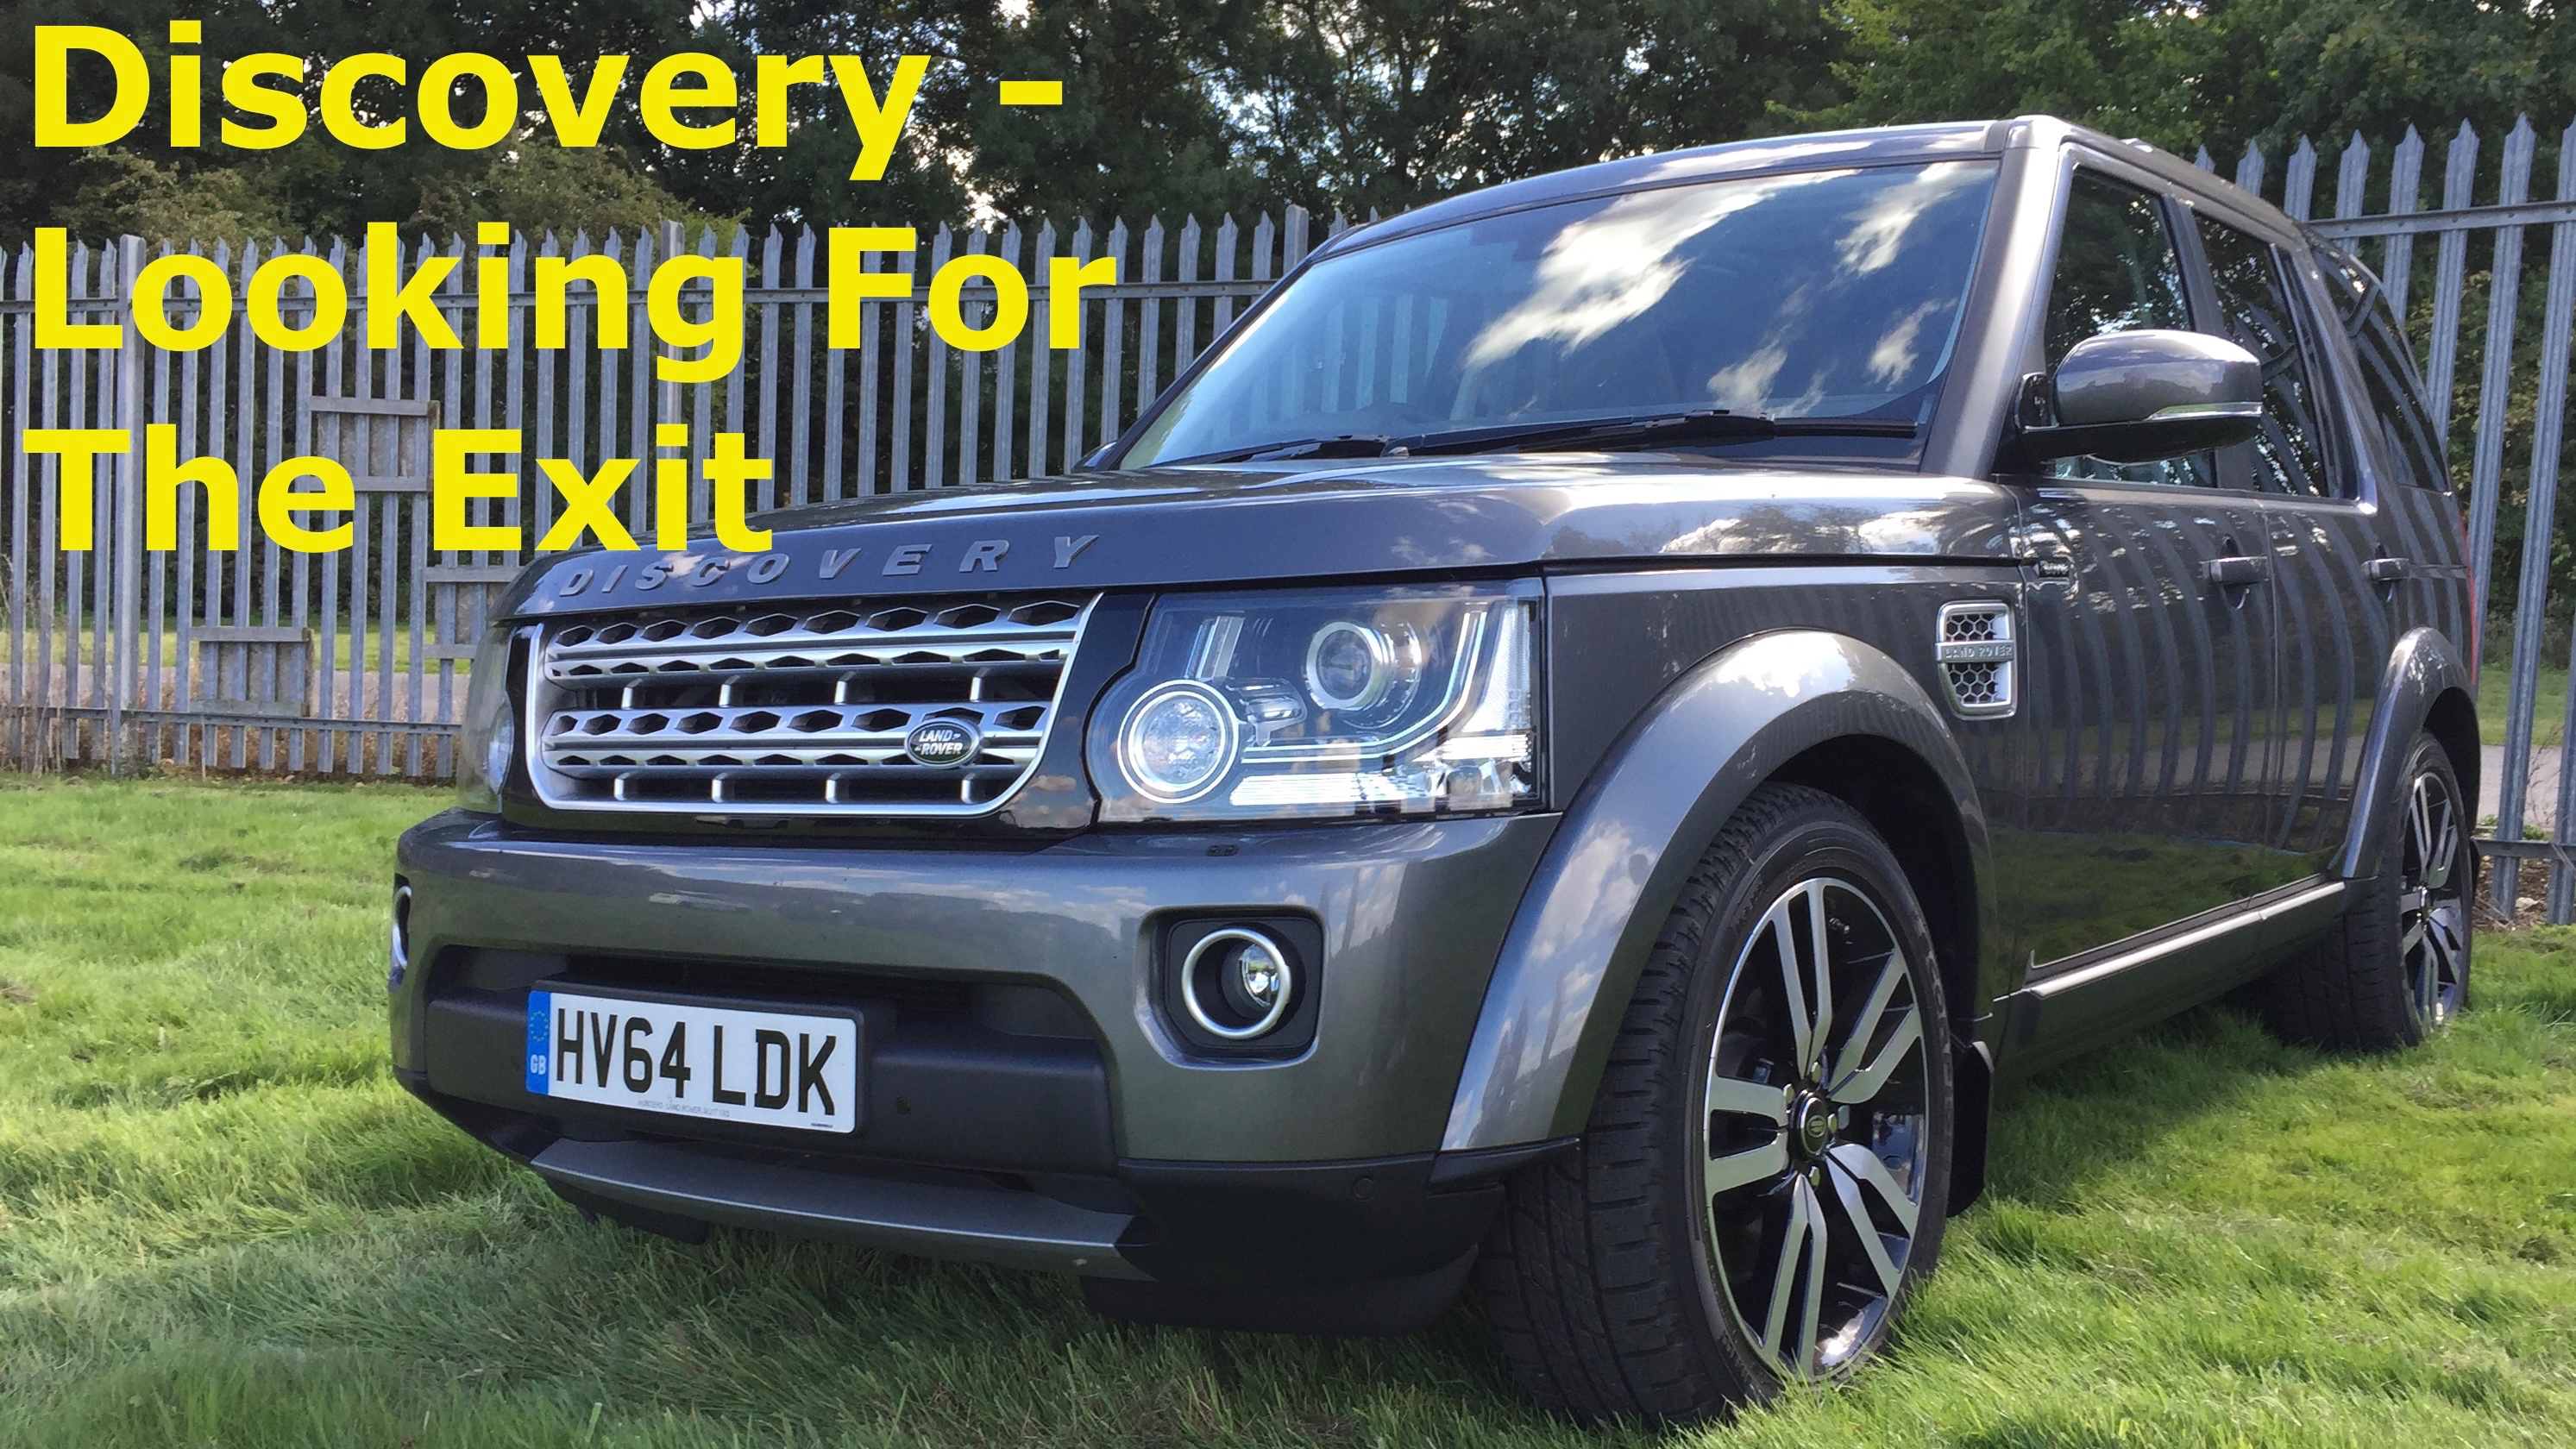 A  grey Land Rover Discovery mark 4 facelift parked in a grassy field next to some galvanised security fencing with the title in yellow reading Discovery - Looking For The Exit